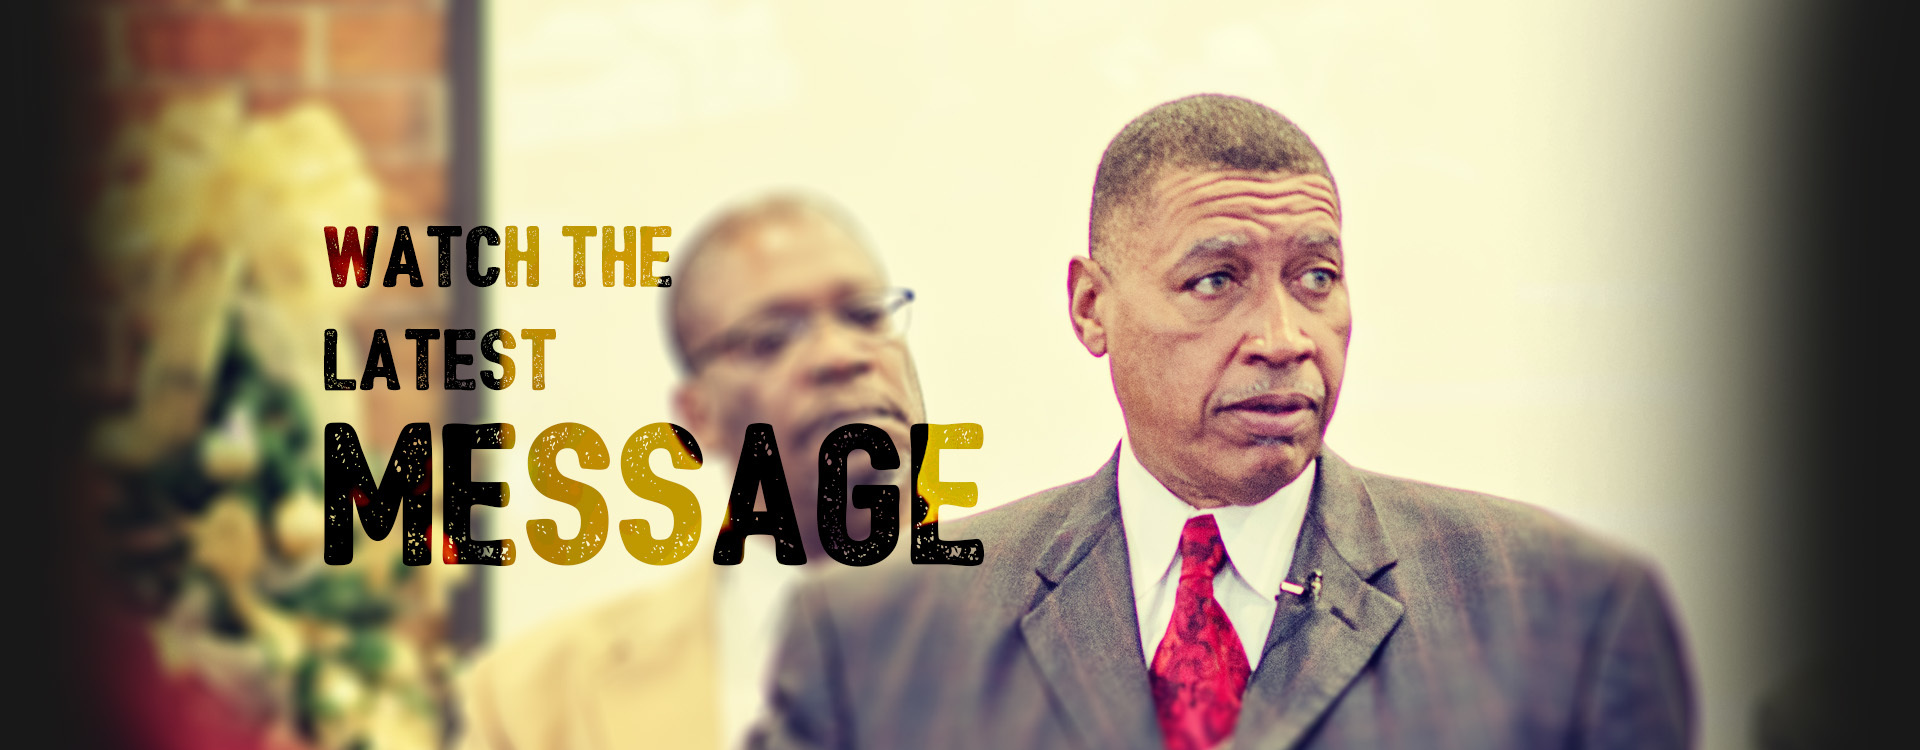 watch-the-latest-message-by-bishop-jeffrey-reed